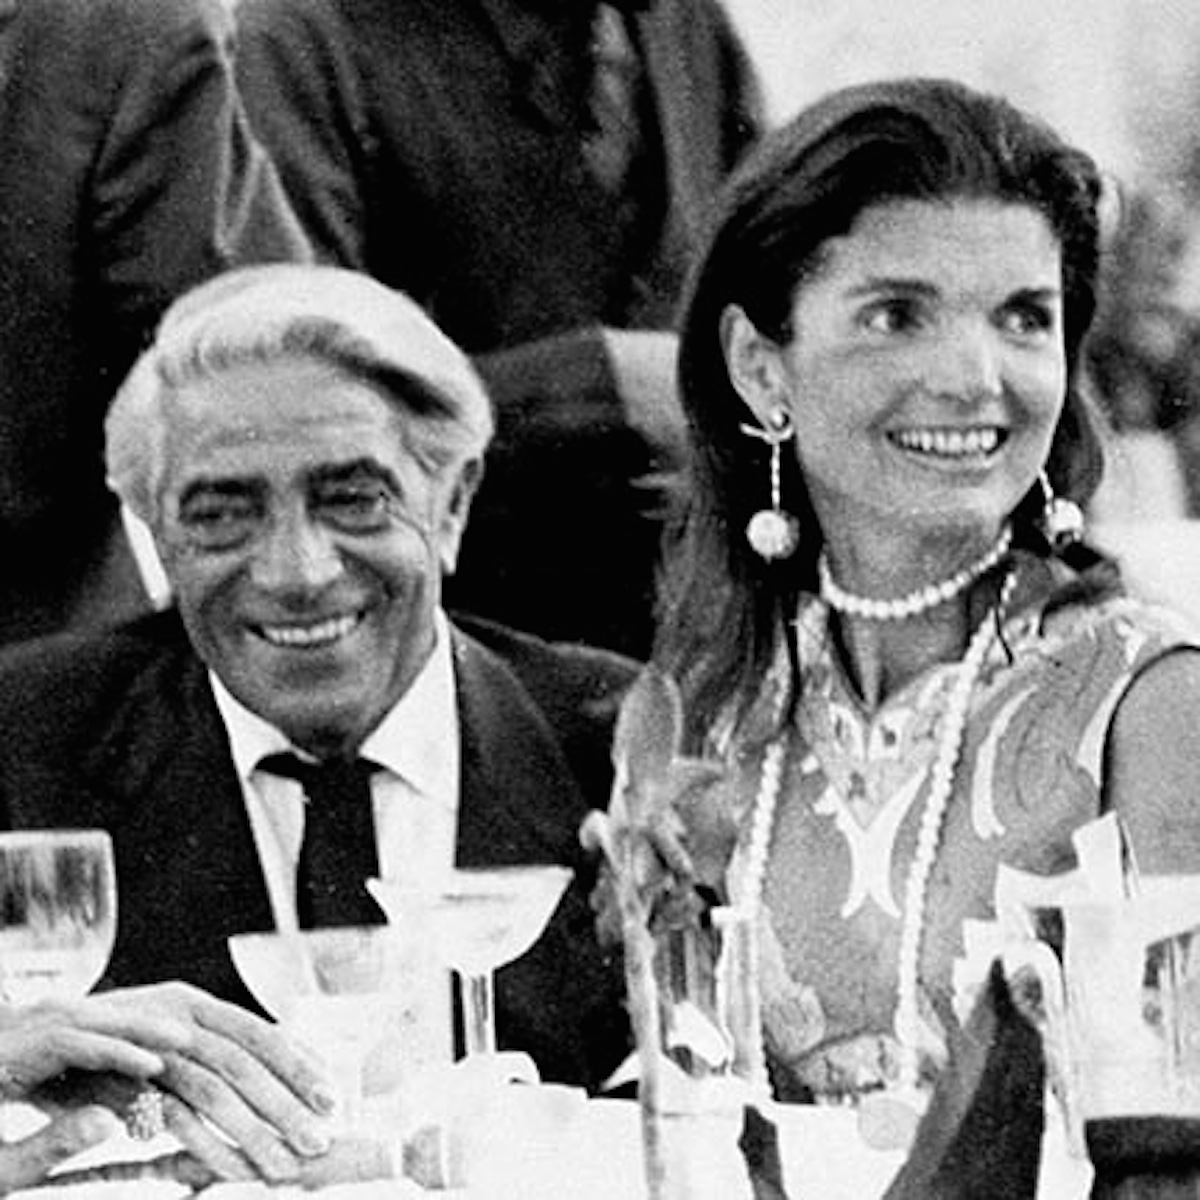 Greek shipping tycoon Aristotle & Jackie Onassis (his butler Alex Magnos R rear) sitting at table, celebrating 1st anniv. of their marriage w. friends at Neraida nightclub.  (Photo by Time Life Pictures/Pix Inc./The LIFE Picture Collection/Getty Images)